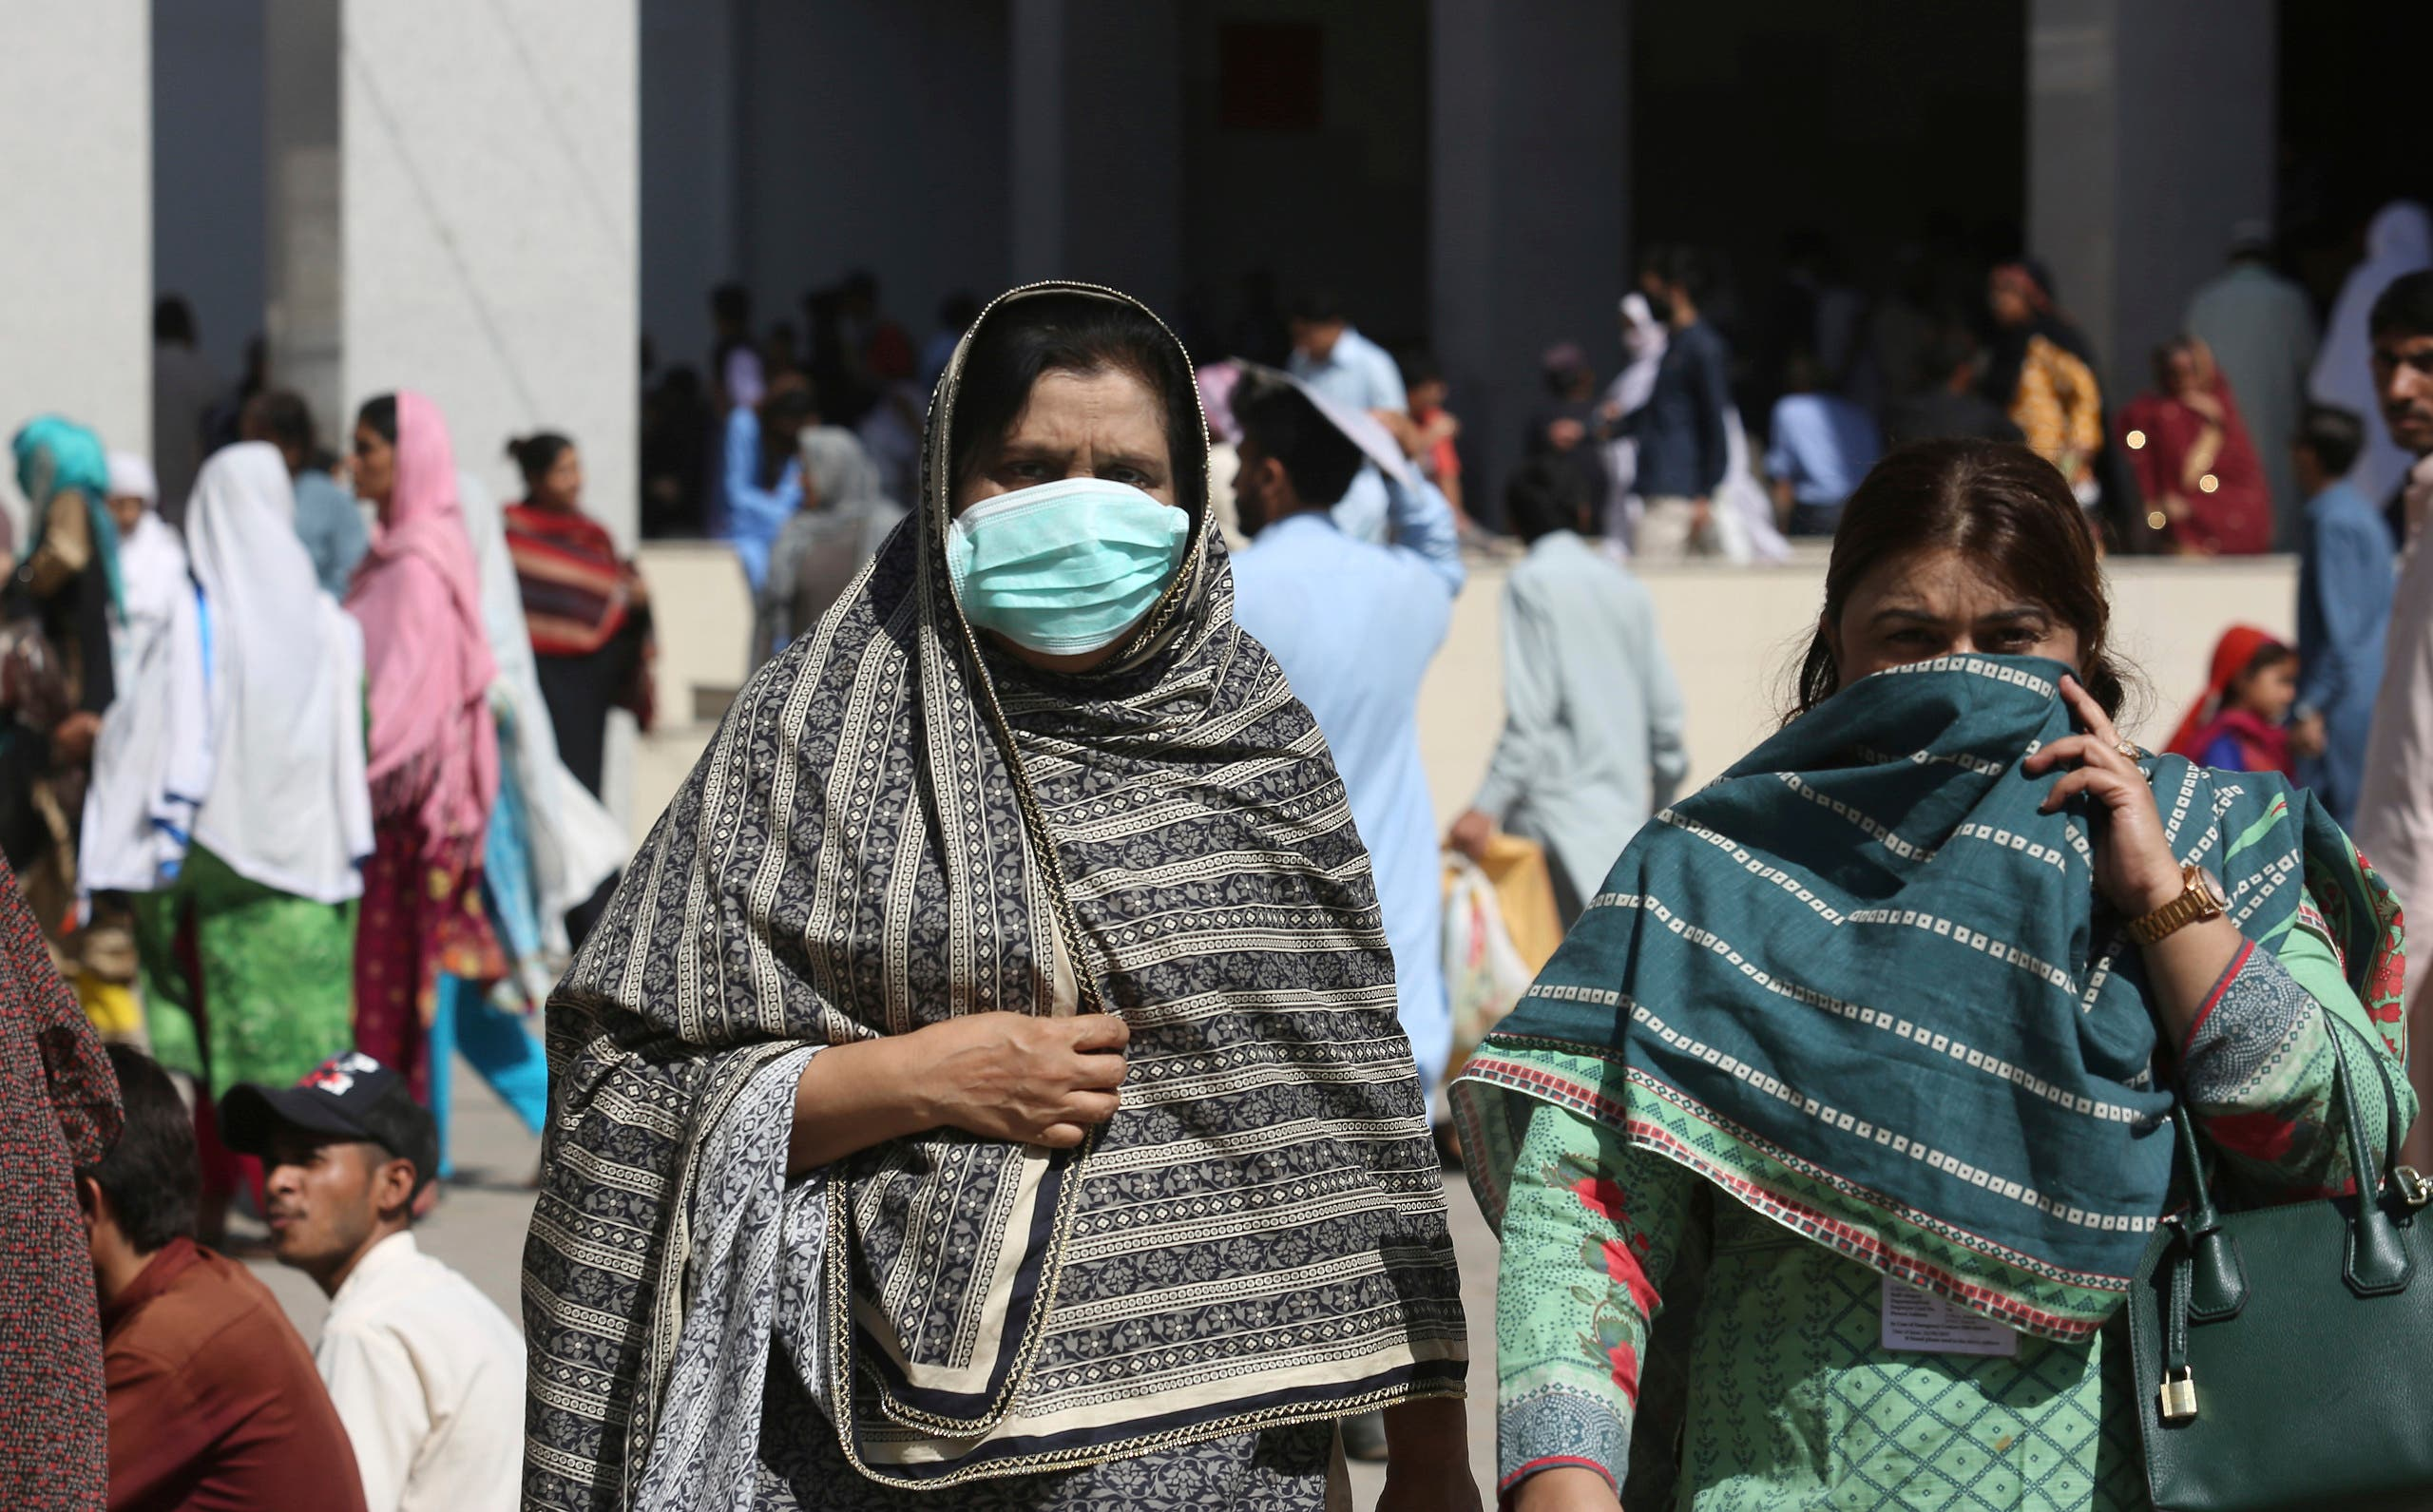 Pakistani women wearing face masks leave the Aga Khan hospital where a patient suspected of having contracted coronavirus was admitted, in Karachi. (AP)